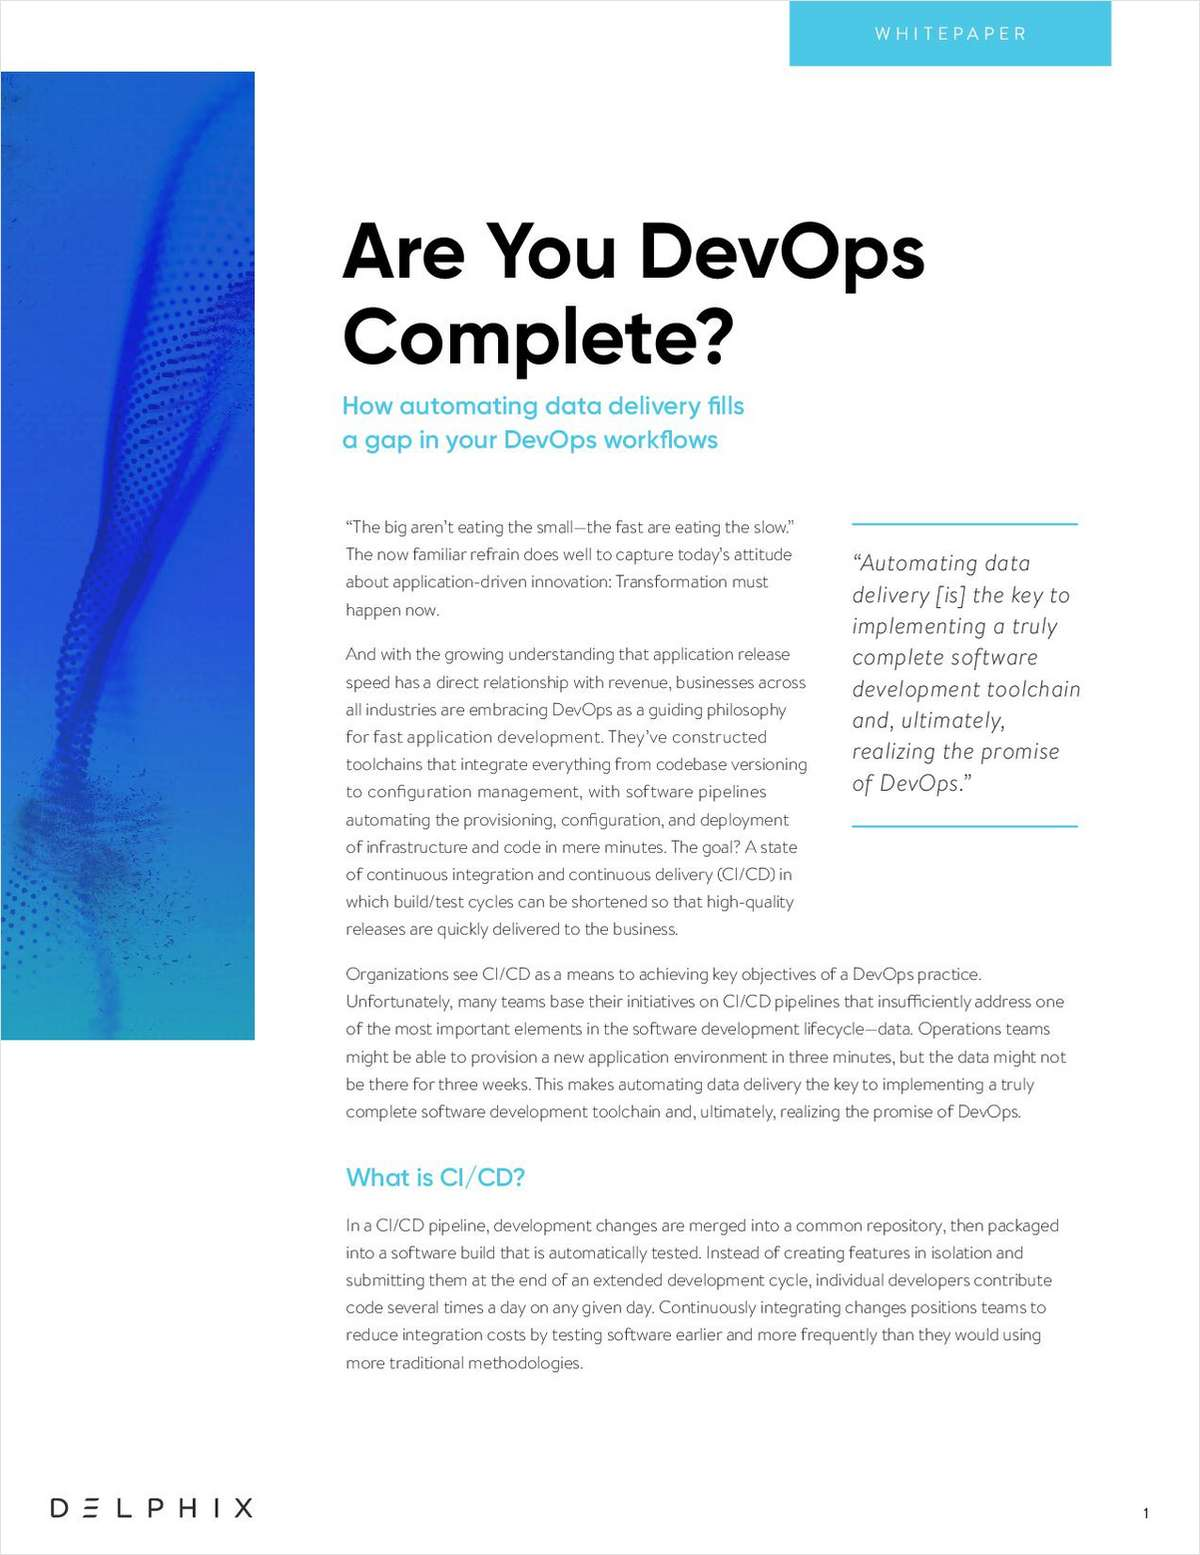 Are You DevOps Complete?